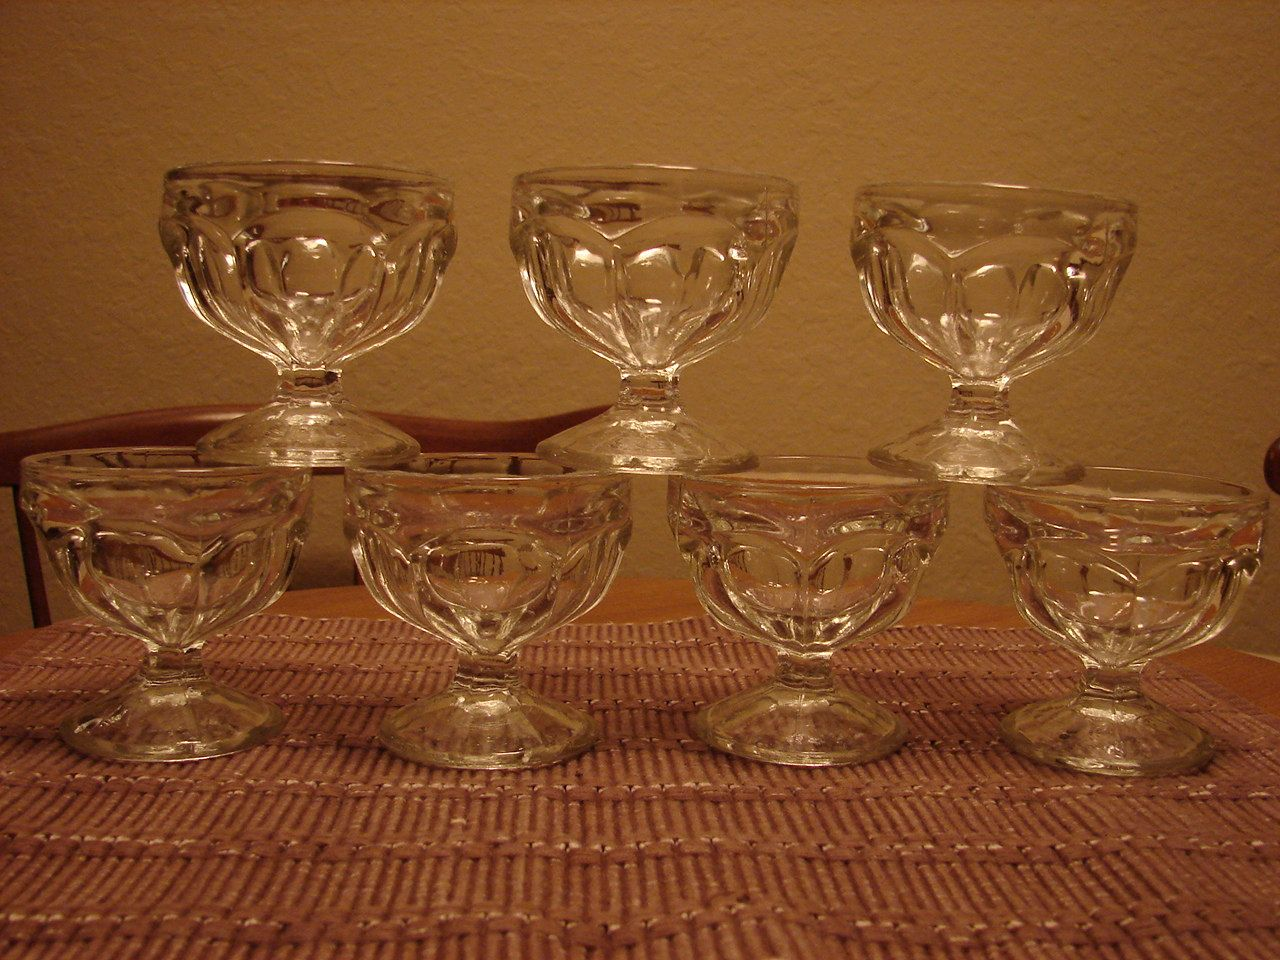 1960 S Seven Sundae Bowls Clear Pressed Glass Footed Pedestal Paneled Dessert Cups Ice Cream Parfai Sundae Bowls Vintage Pressed Glass Ice Cream Dishes